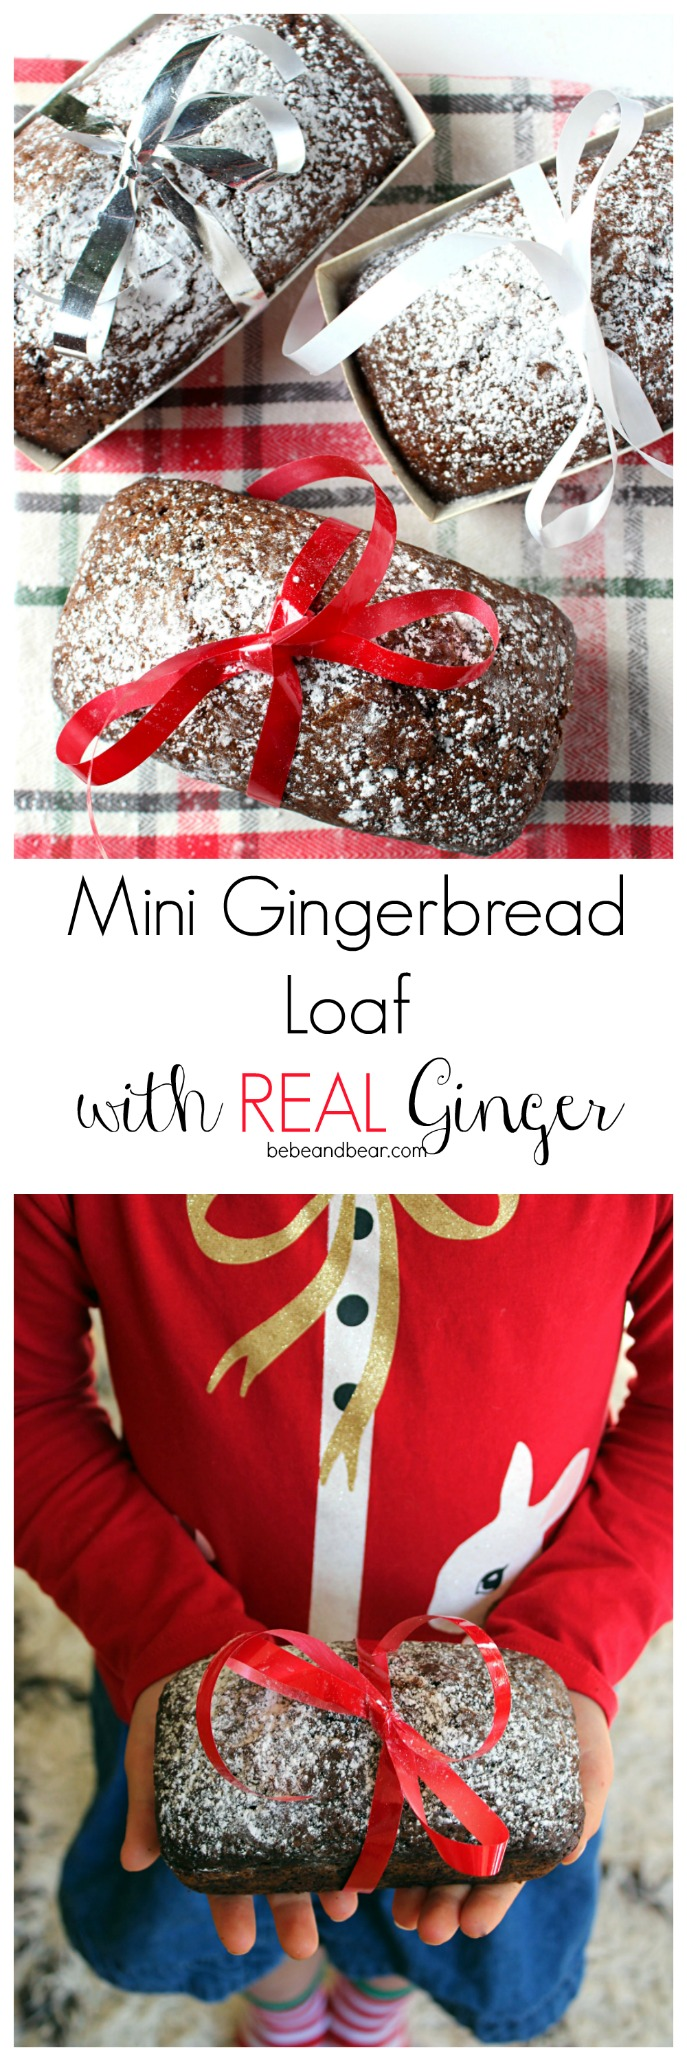 Mini Gingerbread Loaf with Real Ginger